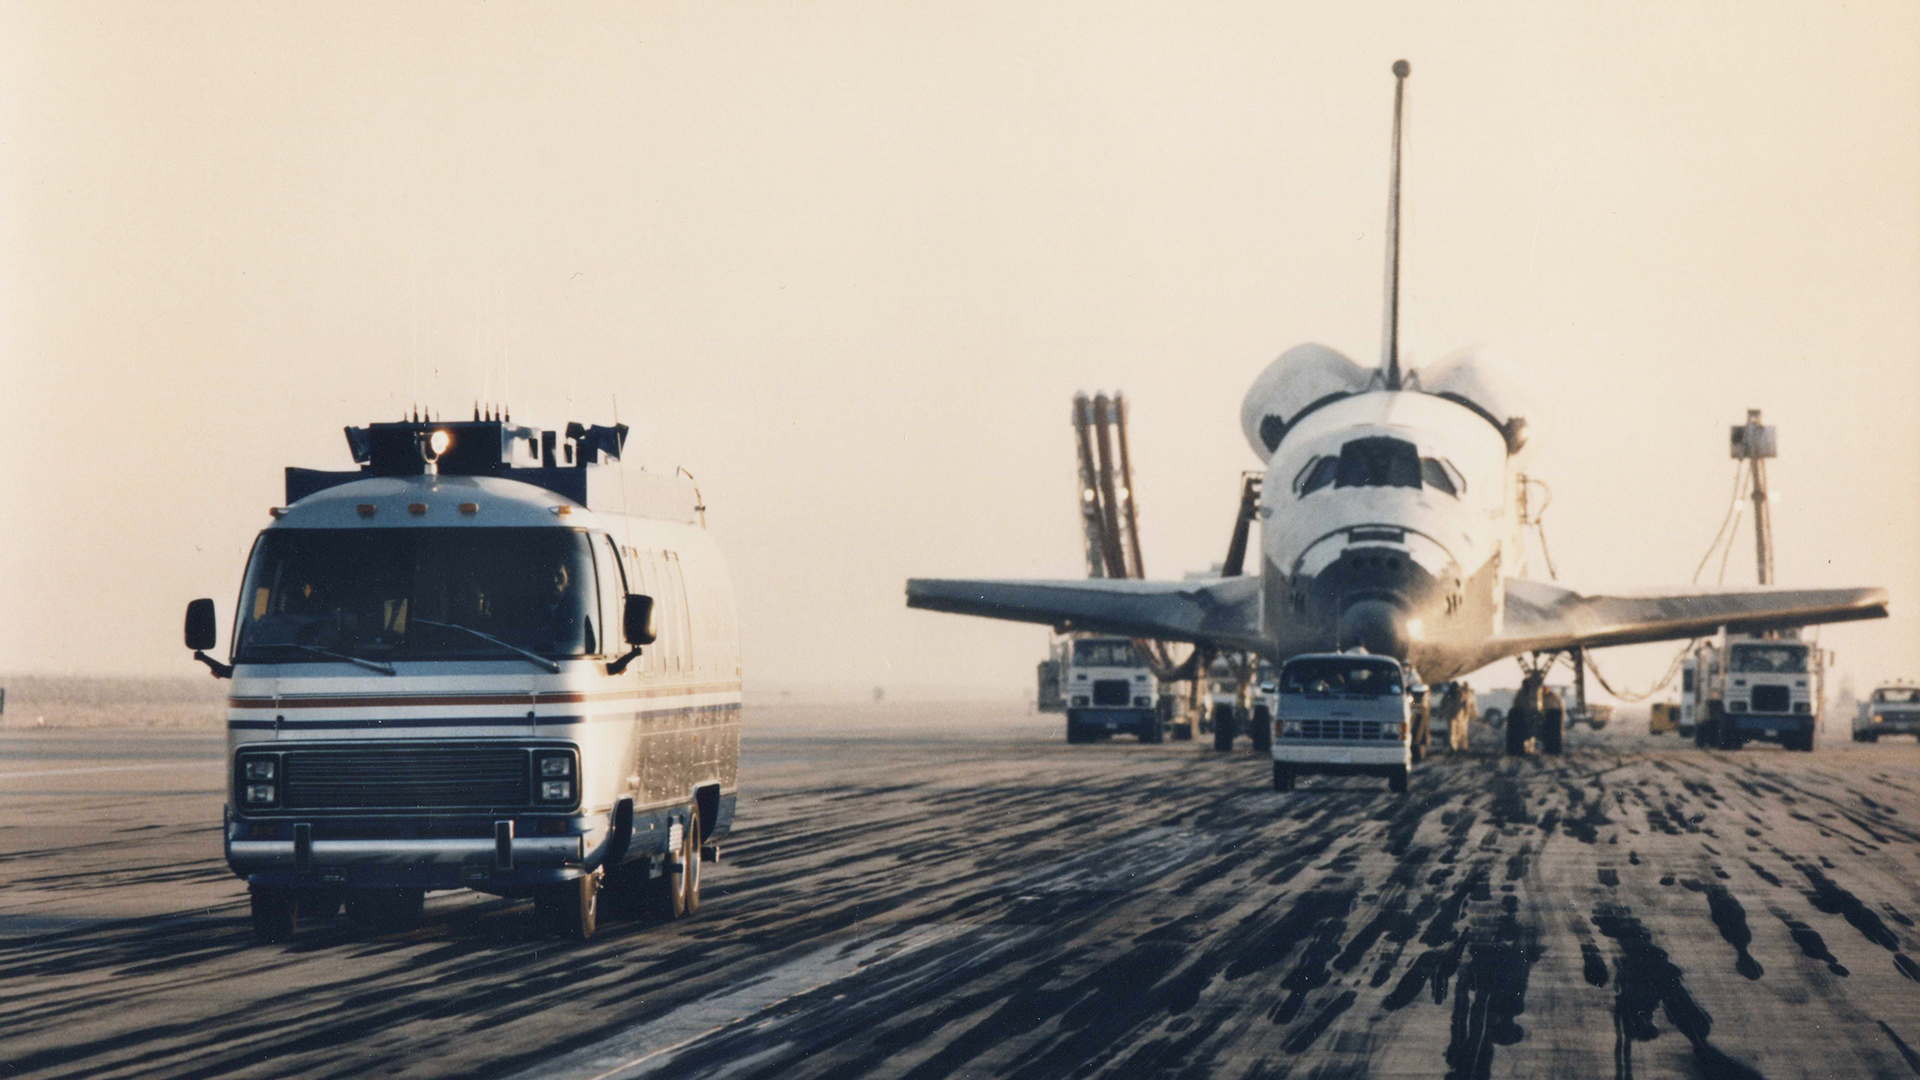 Airstream Astrovan I and NASA Space Shuttle